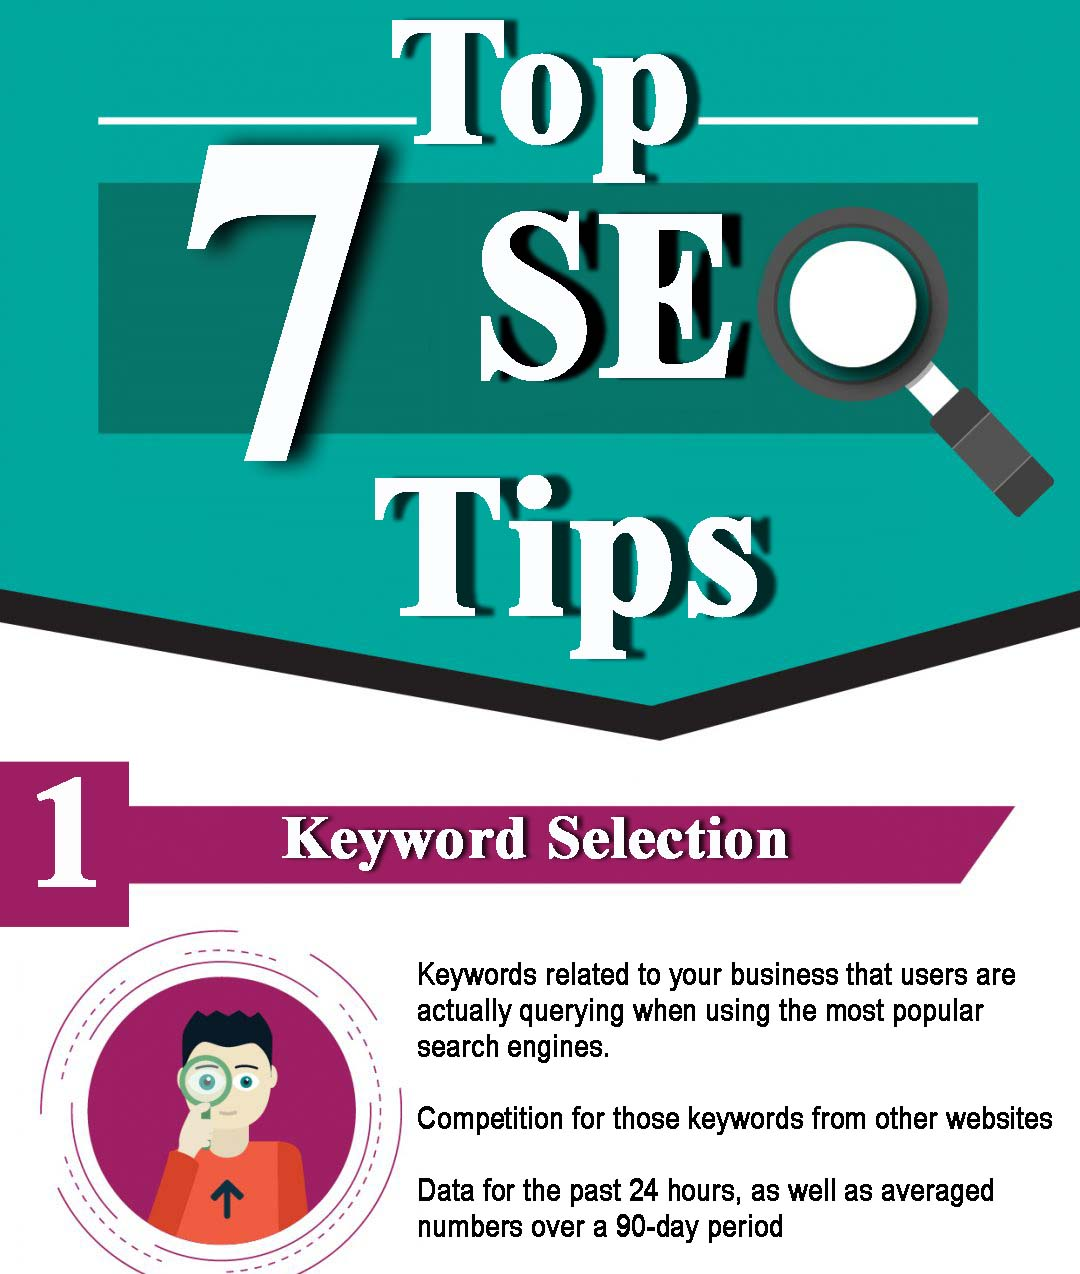 Top 7 SEO Tips